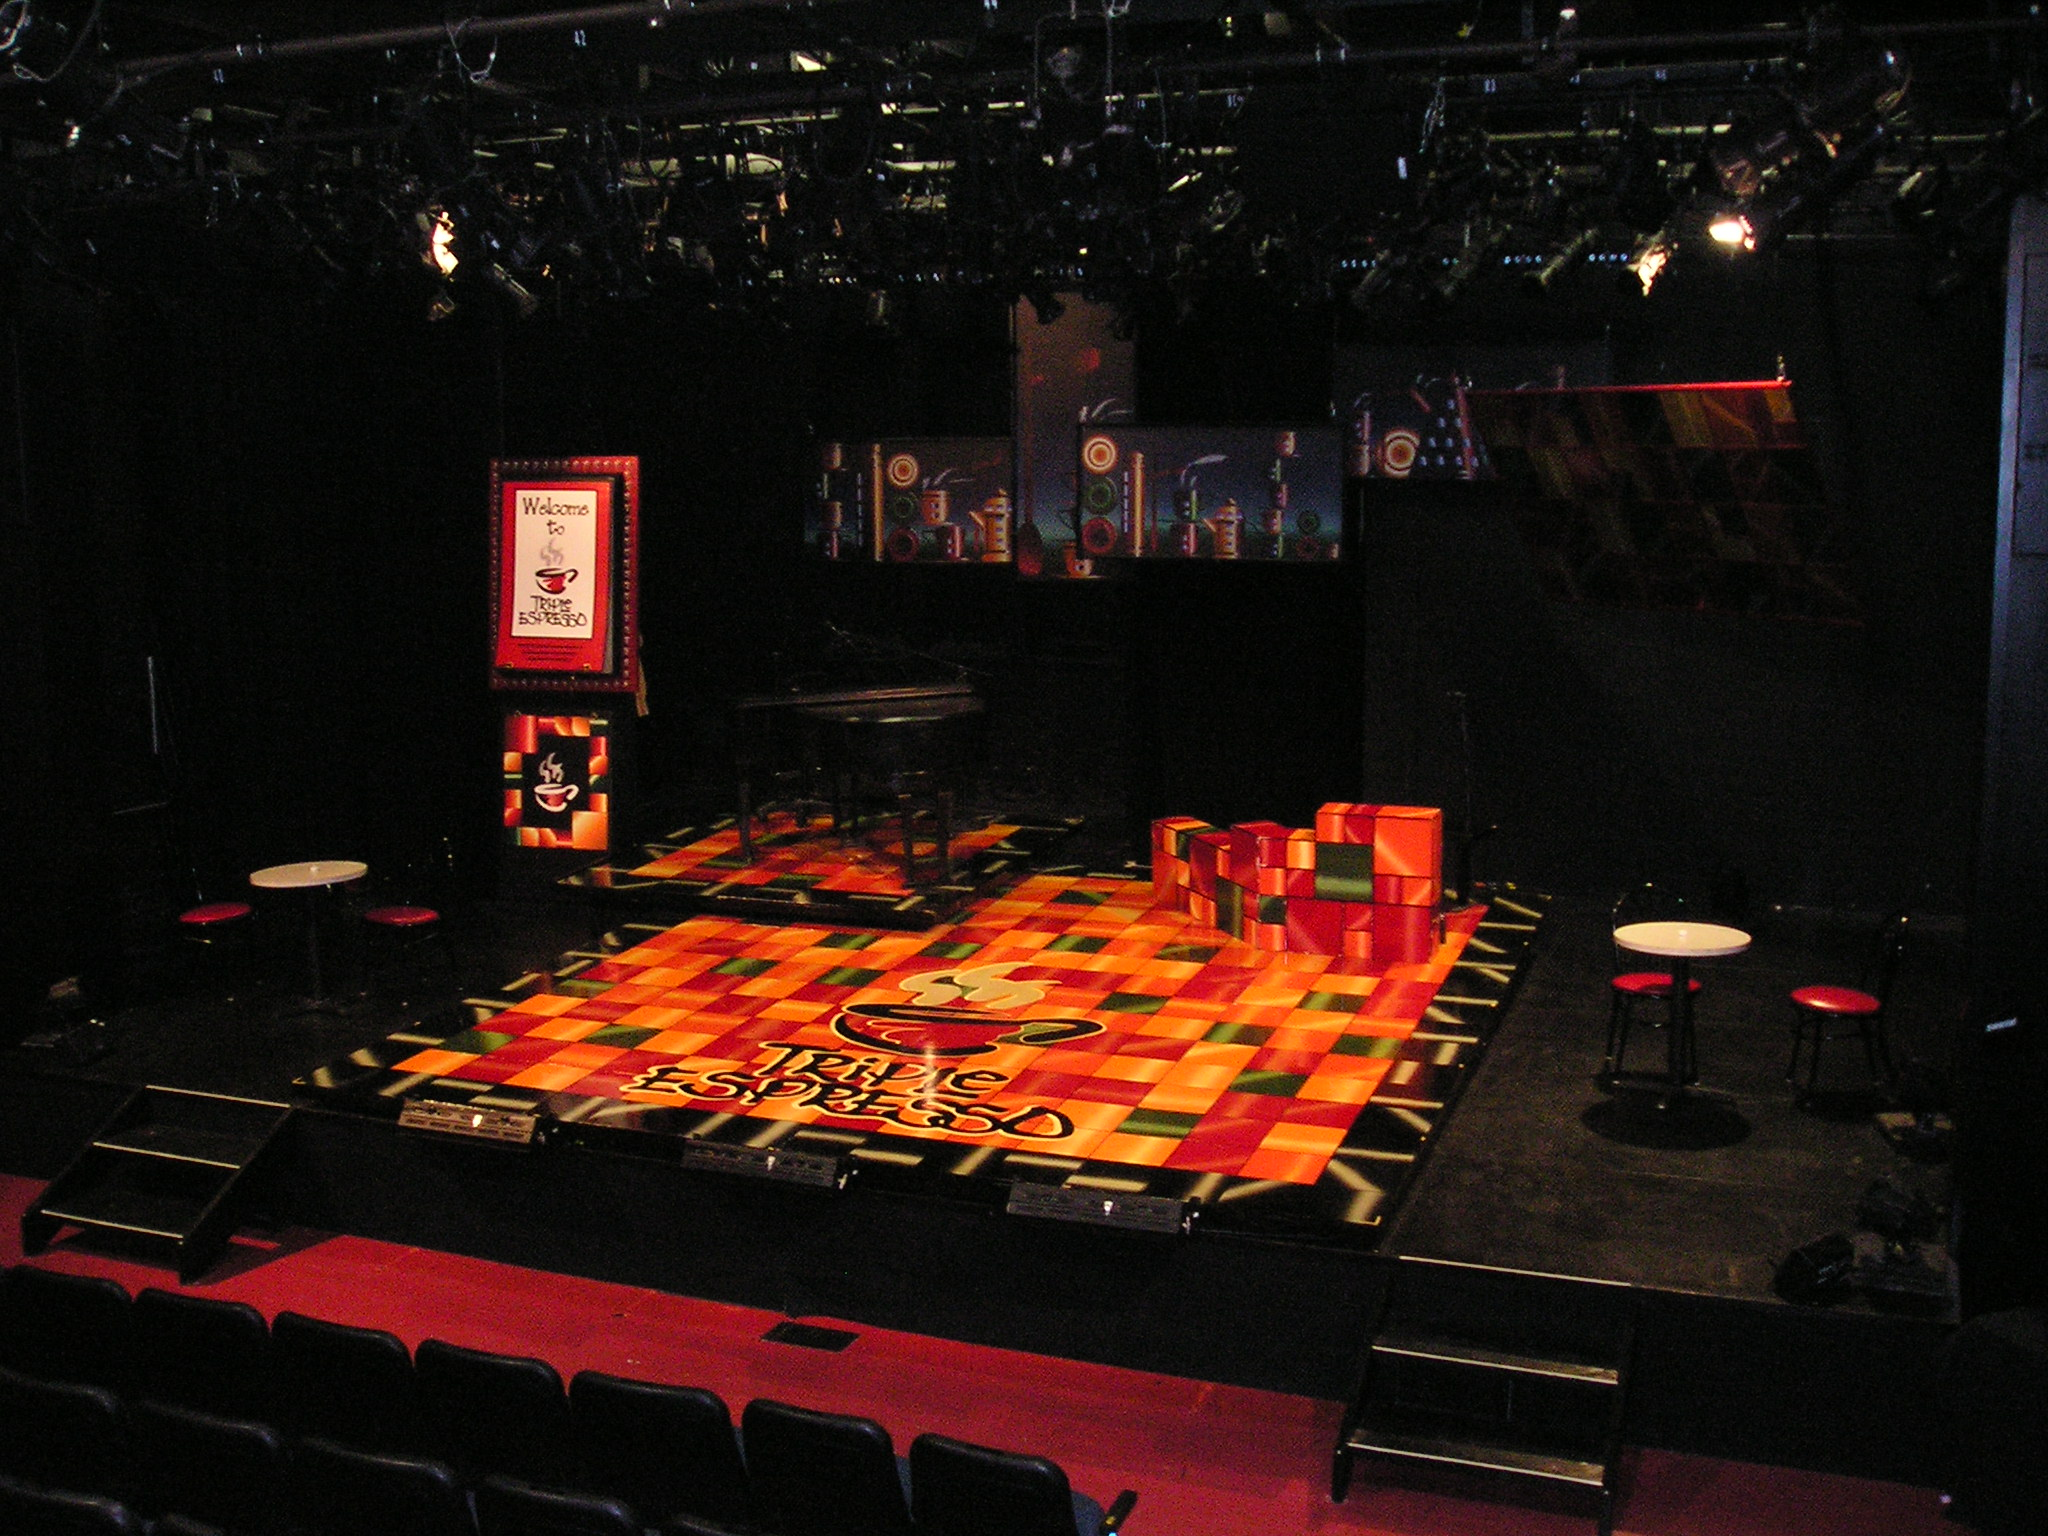 Geva Theatre Center: Fielding Stage